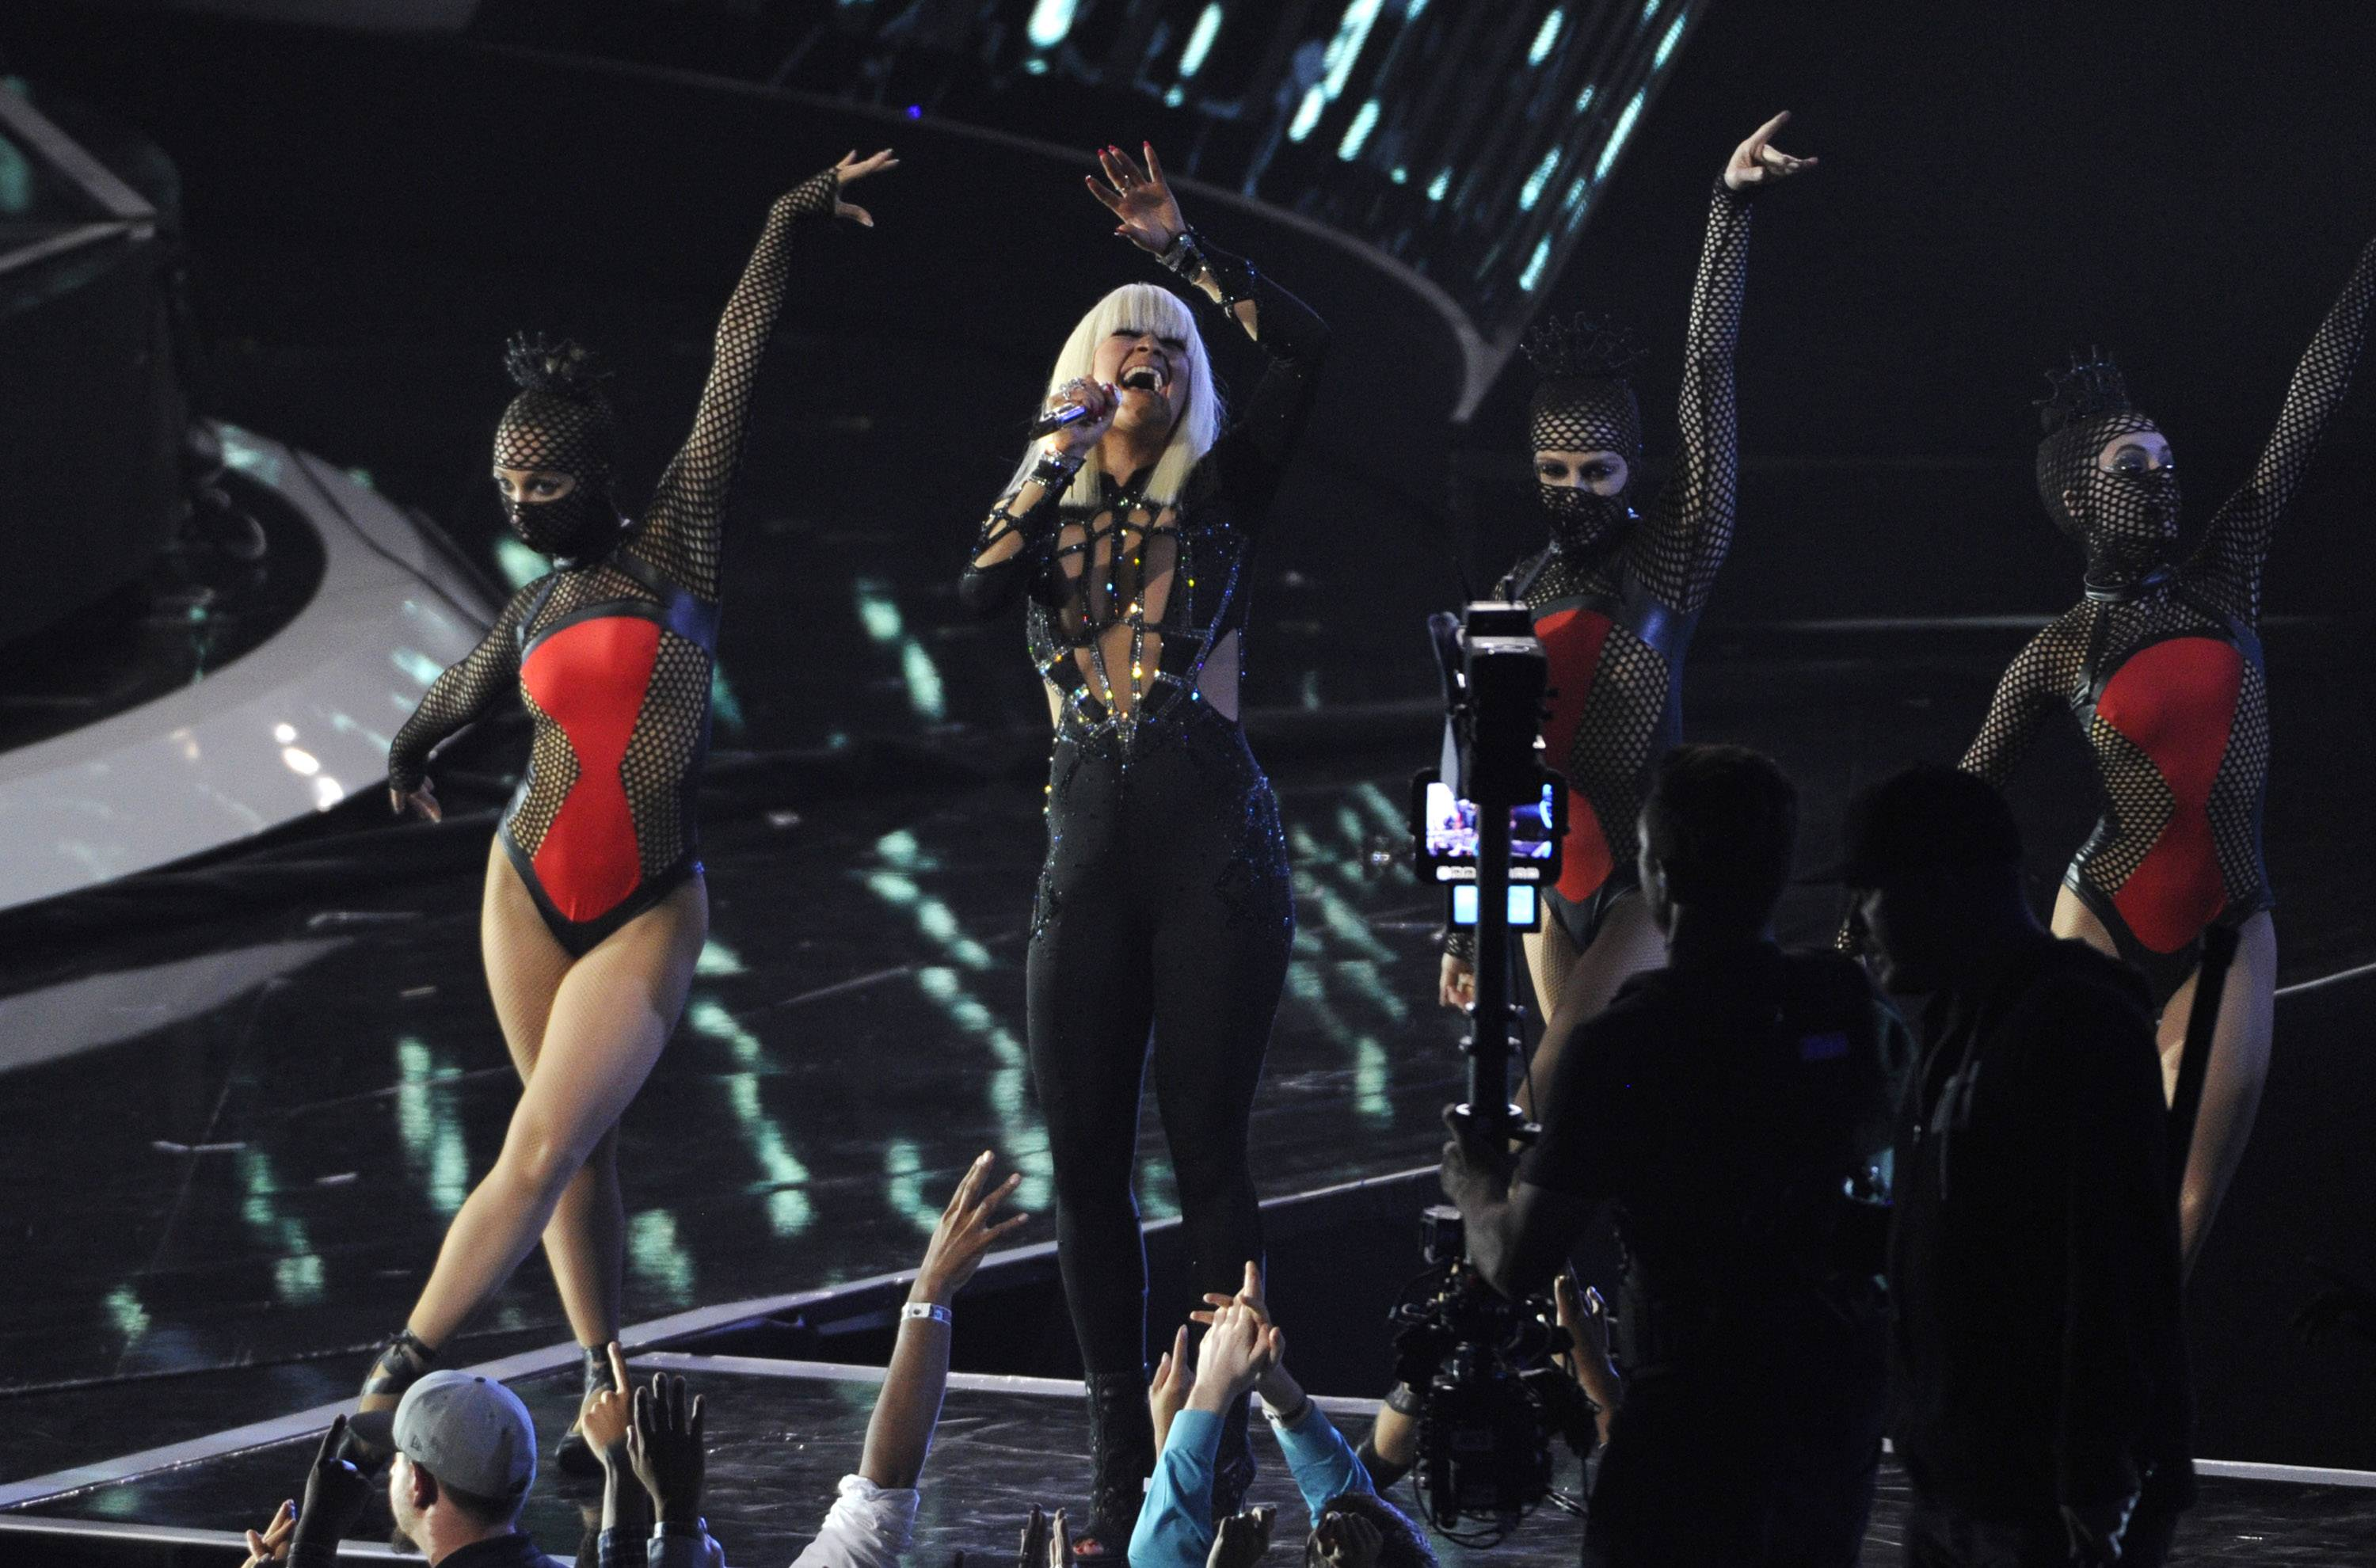 Iggy Azalea performs onstage at the MTV Video Music Awards.